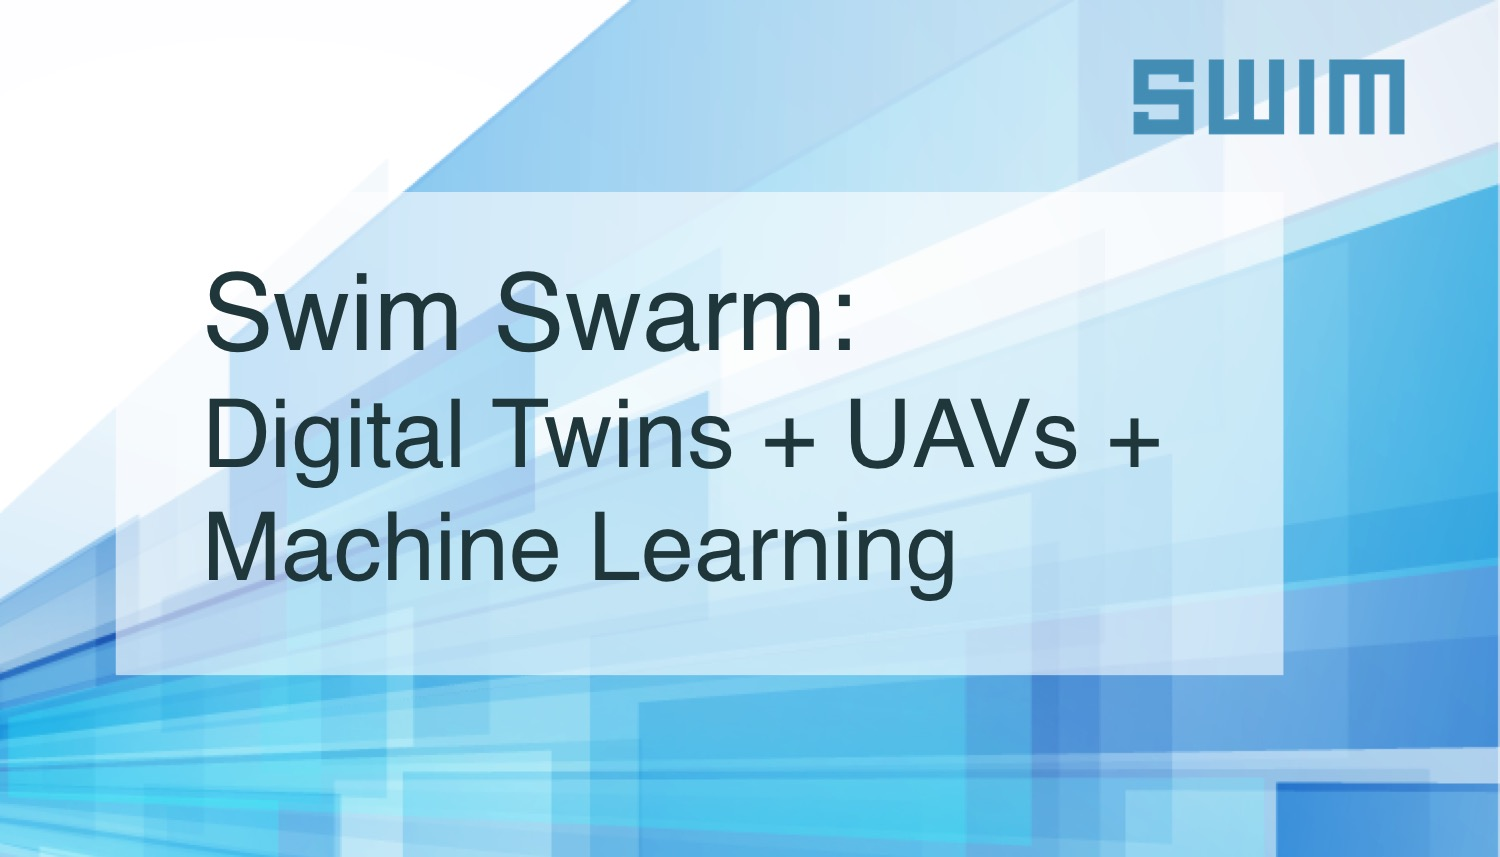 Swim Swarm: Digital Twins + UAVs + Machine Learning | Swim Inc.